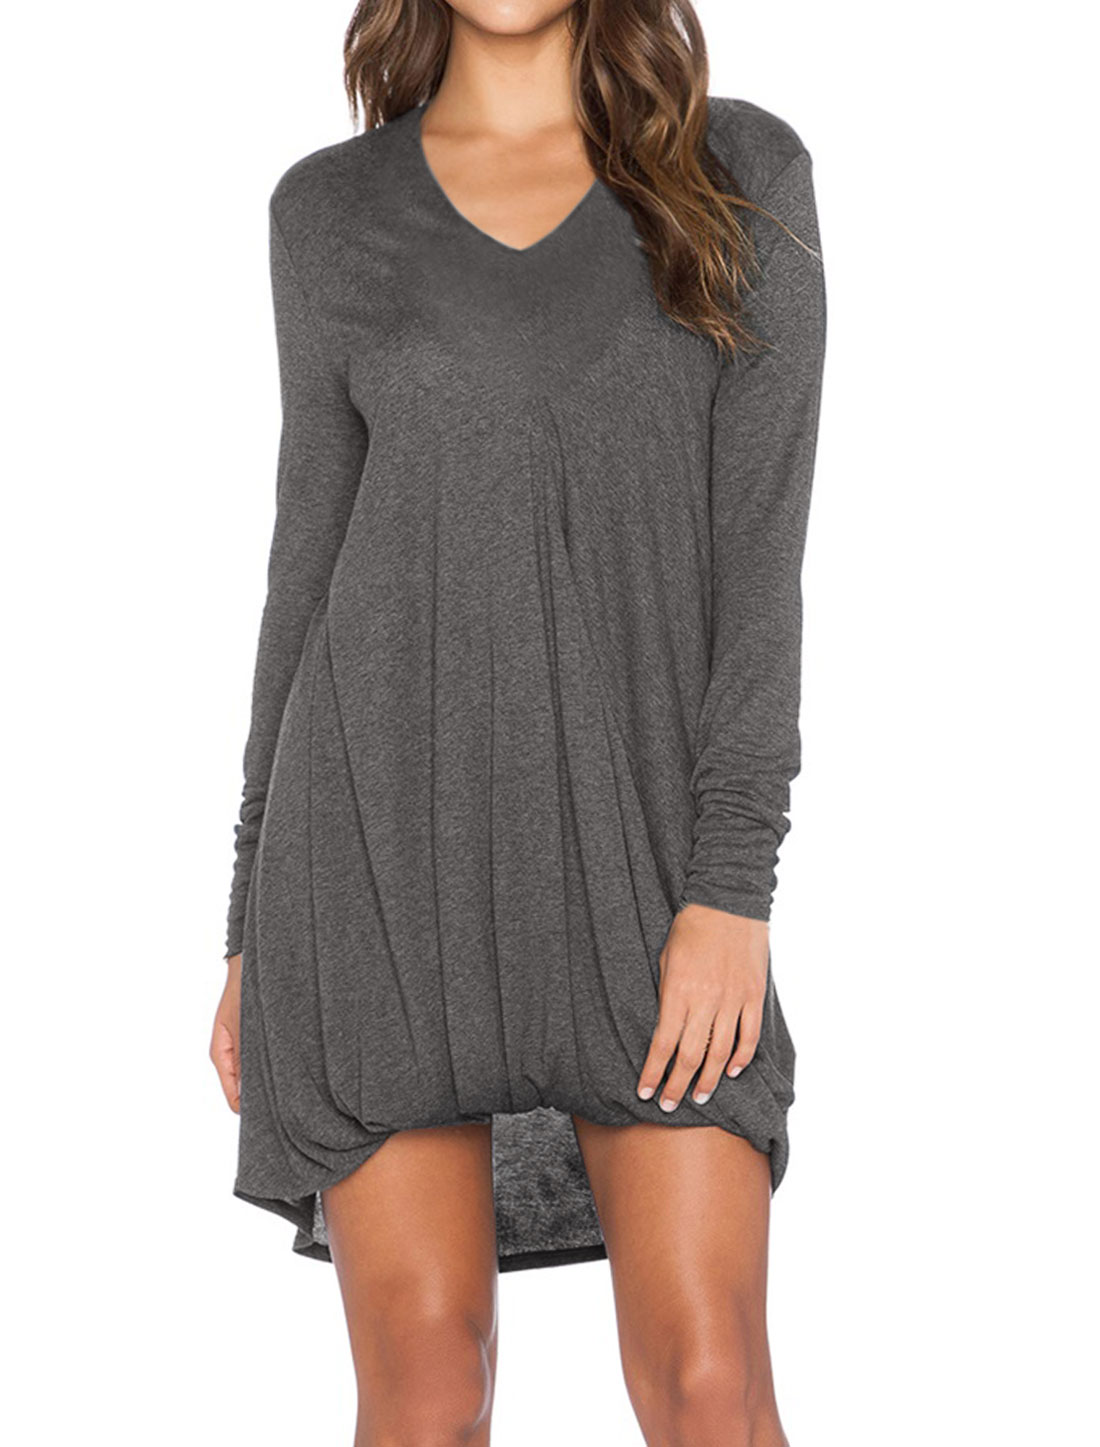 Women Long Sleeves V Neck Ruched Front Tunic Dress Gray S